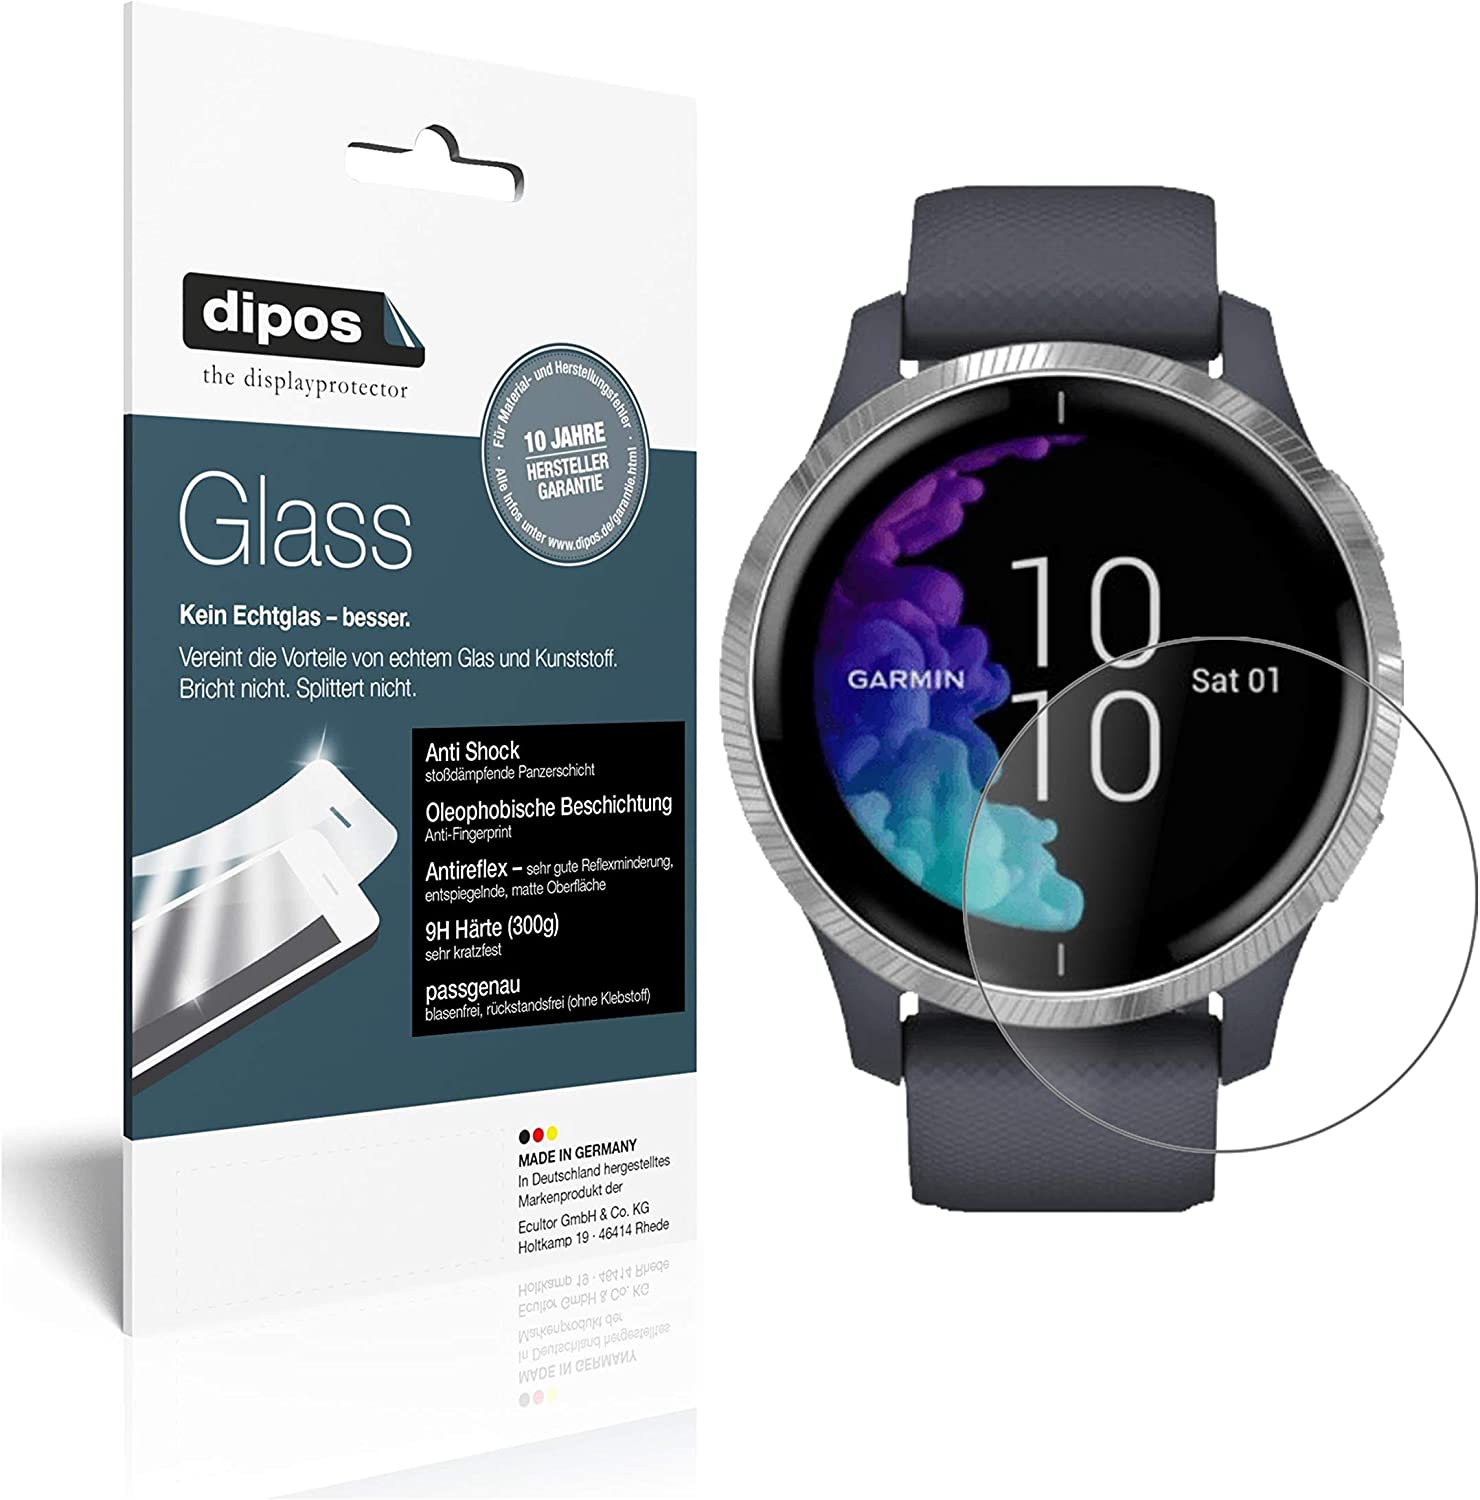 anti-reflective and flexible FX Screen Protector 3X atFoliX Shock Absorption Protection Film compatible with Garmin Venu Anti Shock Screen Protector